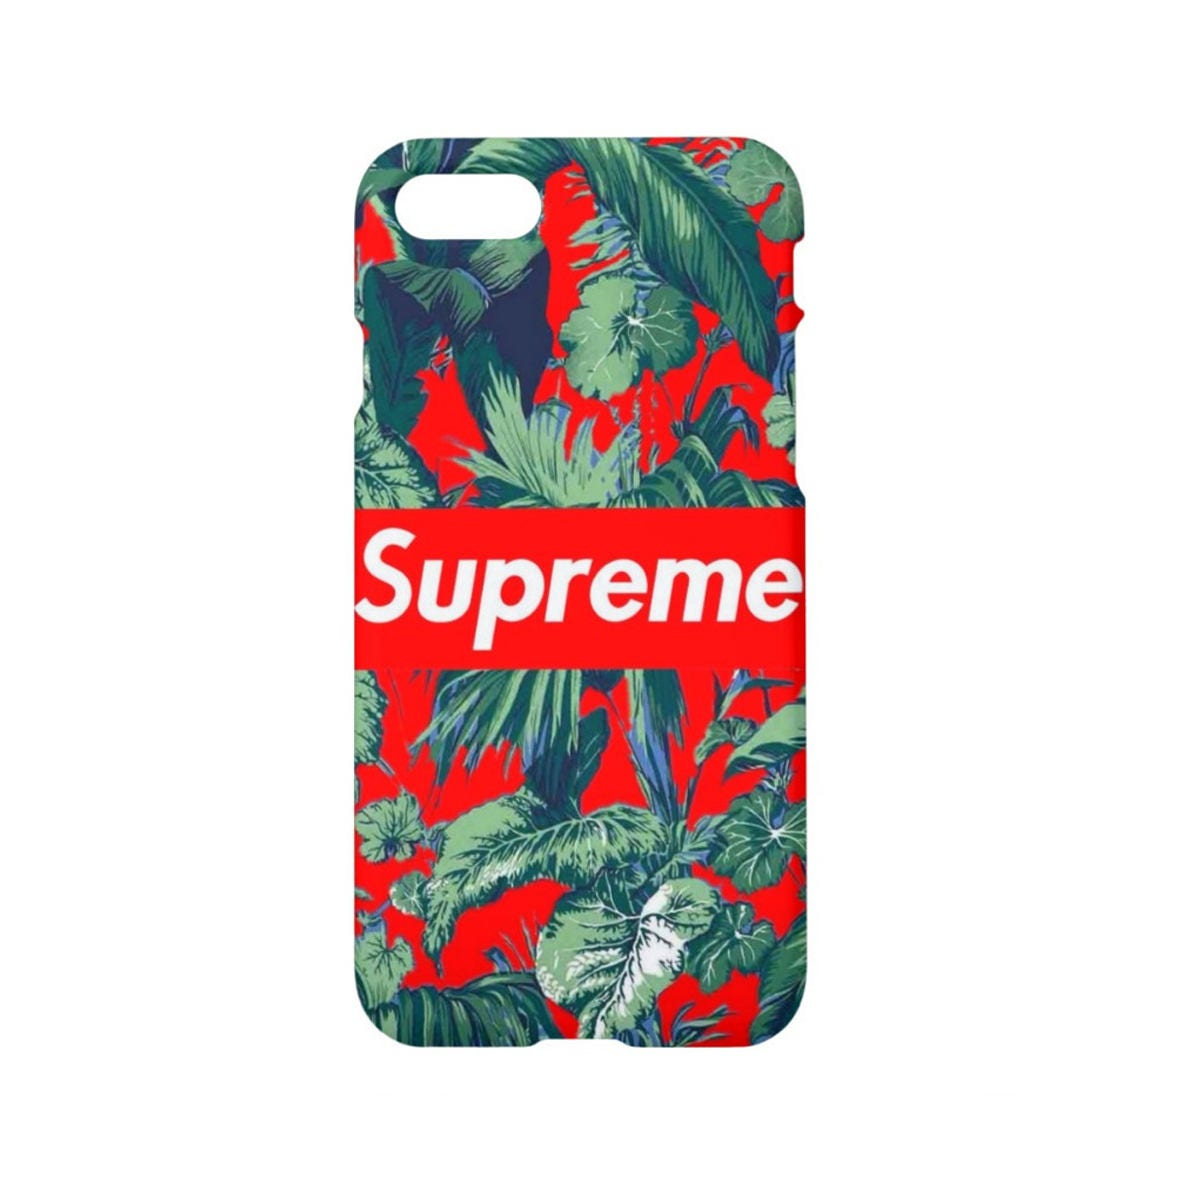 floral iphone x case supreme iphone 8 8 plus iphone 7 7 plus. Black Bedroom Furniture Sets. Home Design Ideas